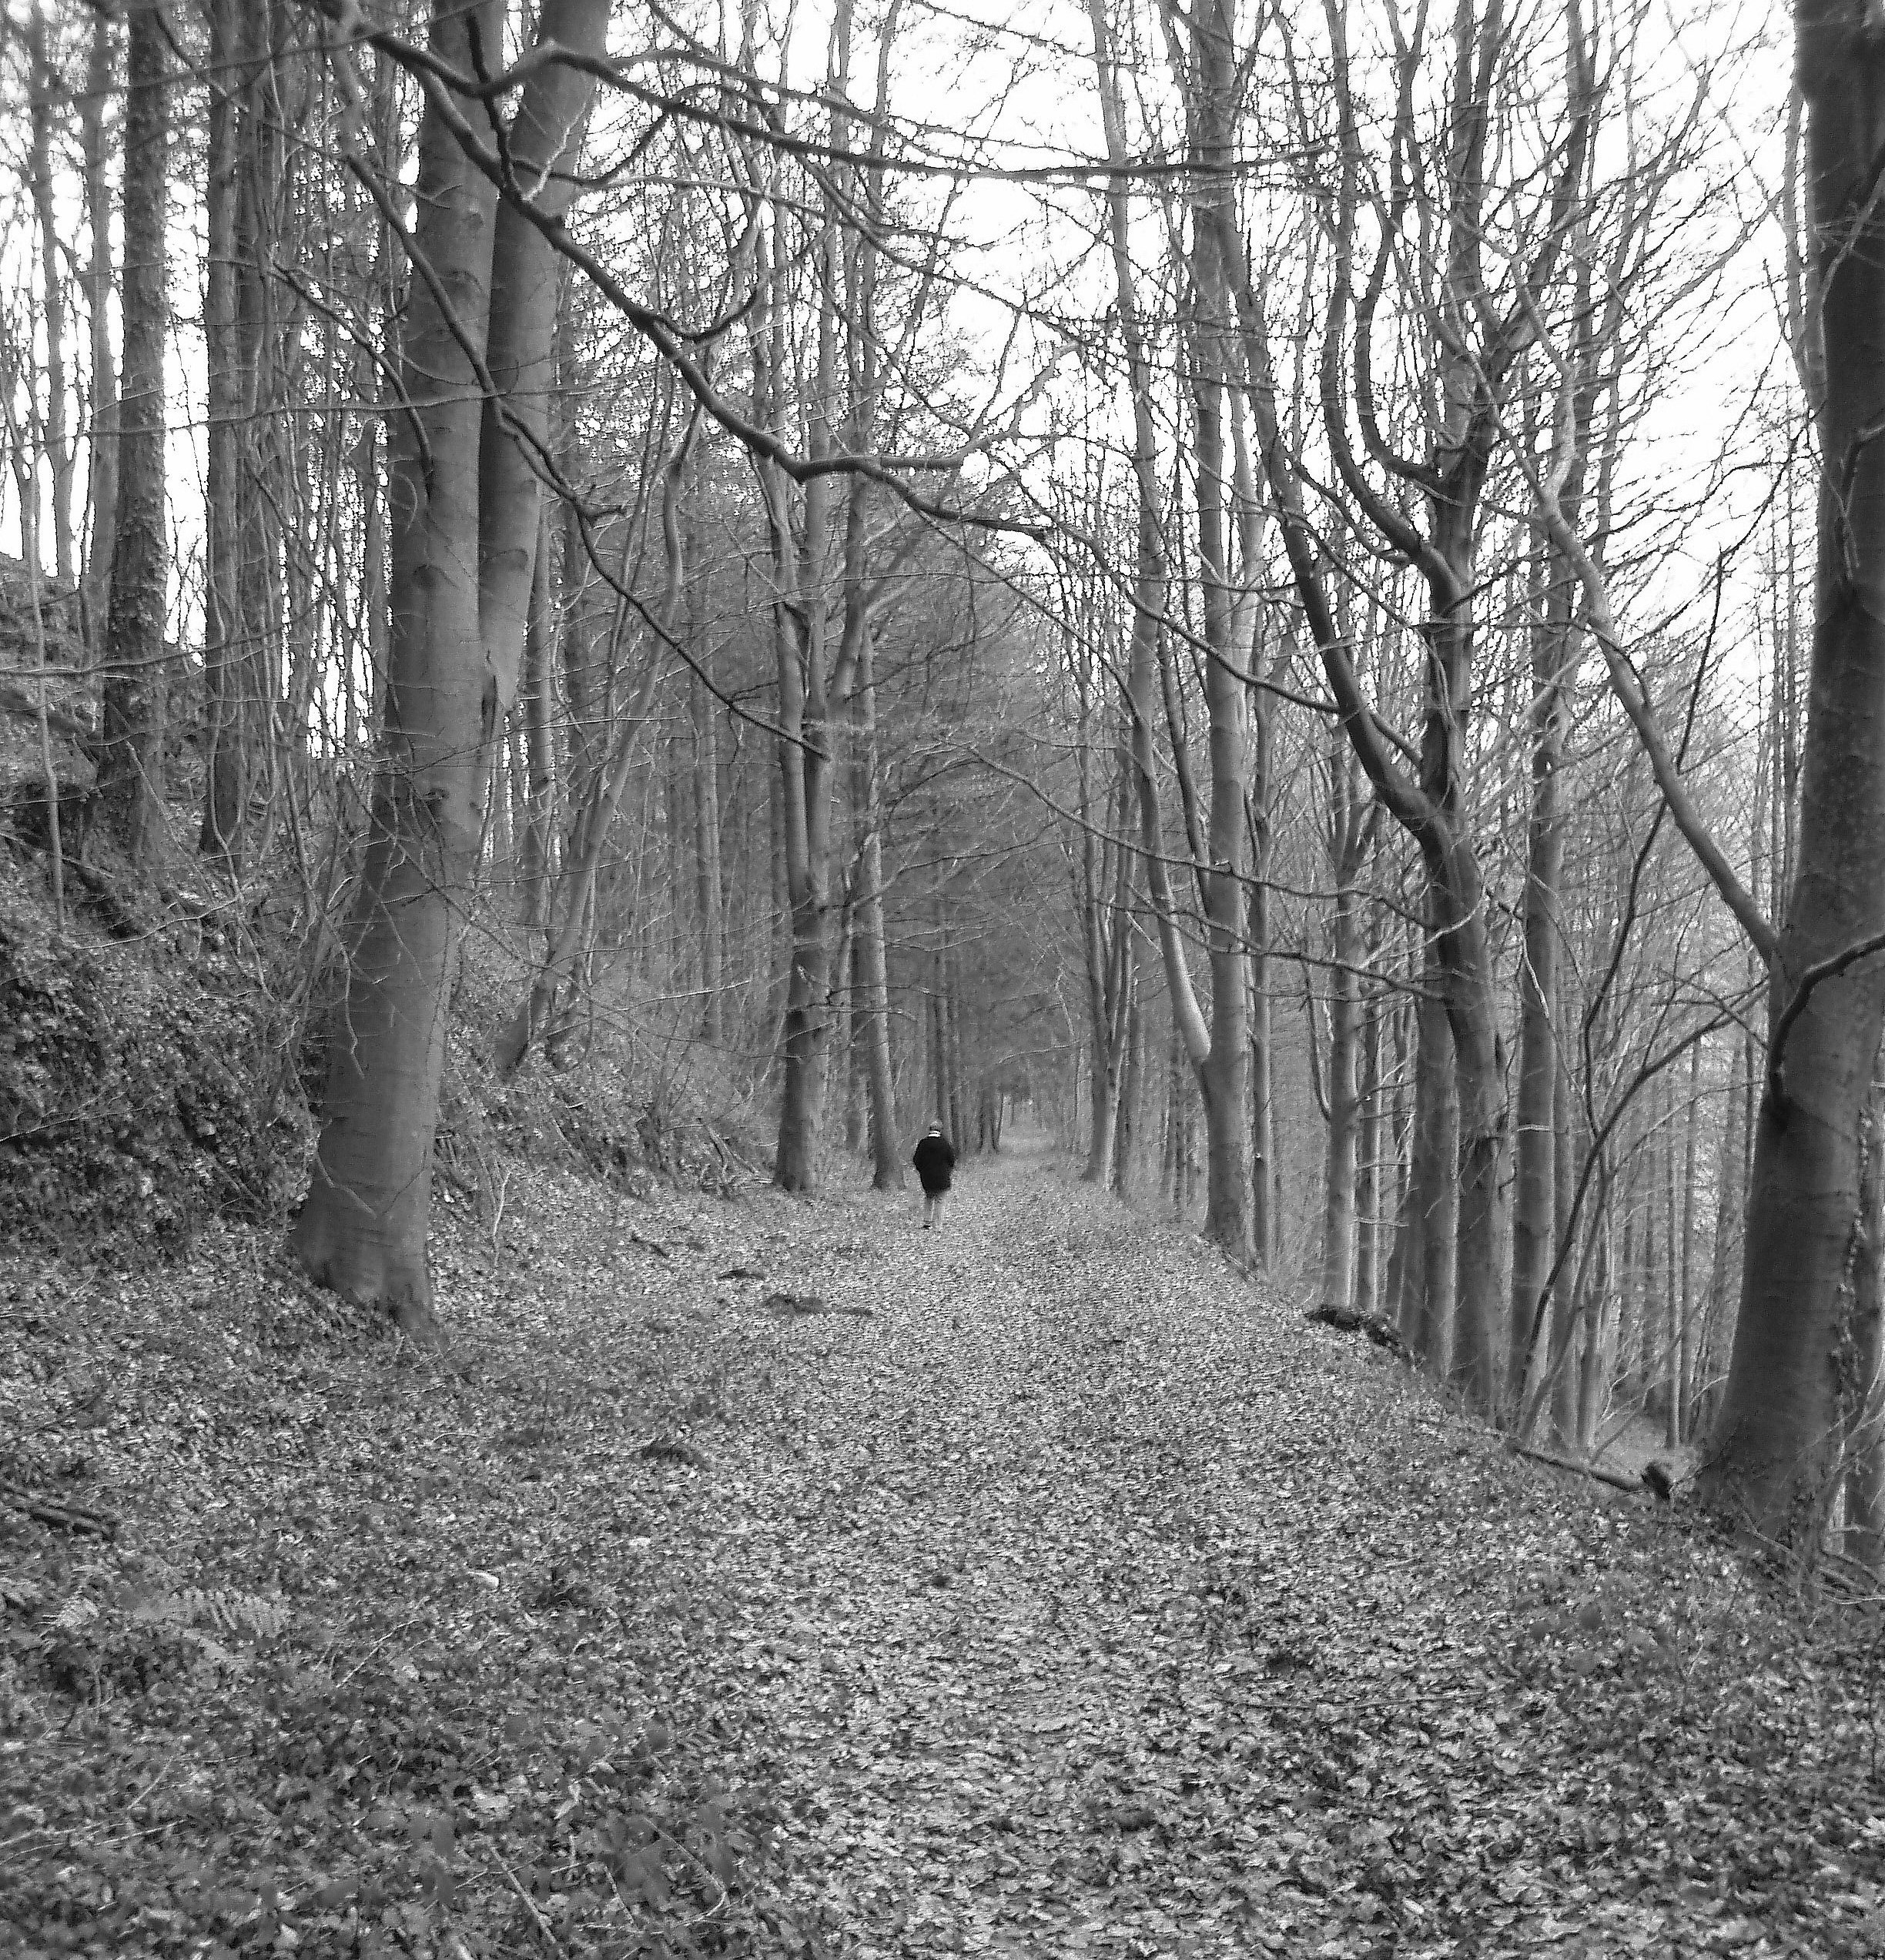 lone individual walking through a winter woodland